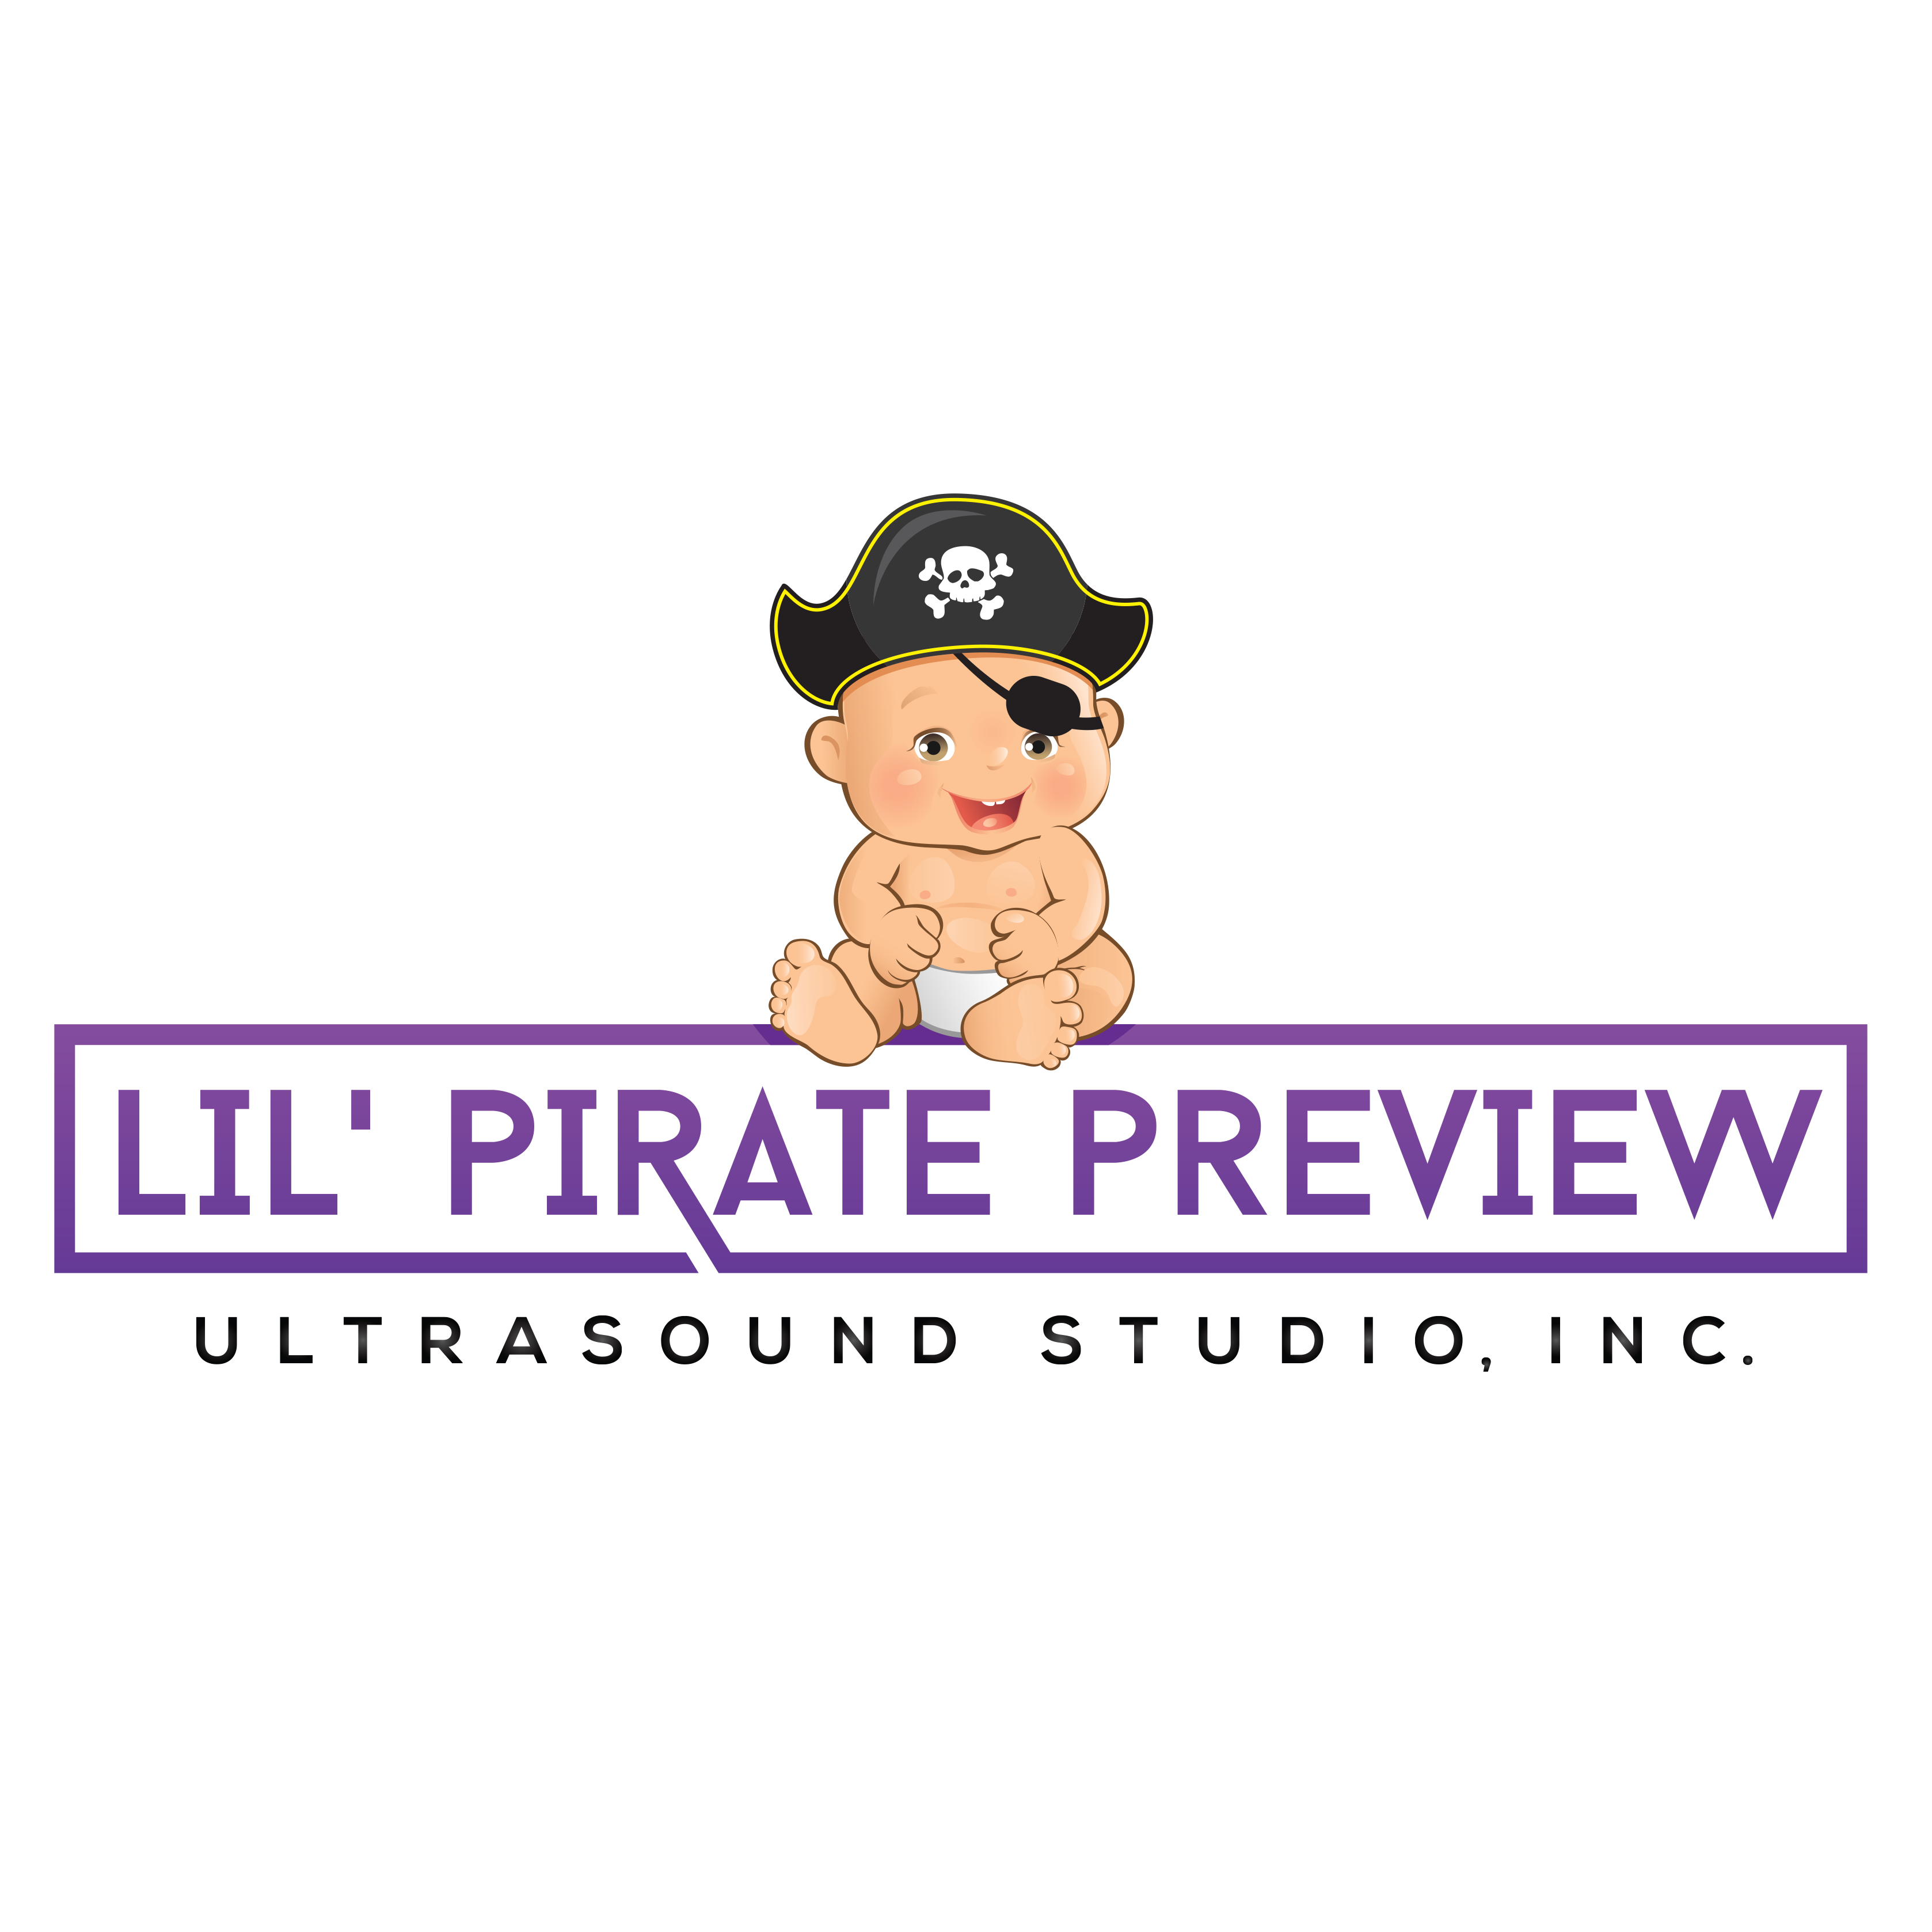 Lil' Pirate Preview Ultrasound Studio